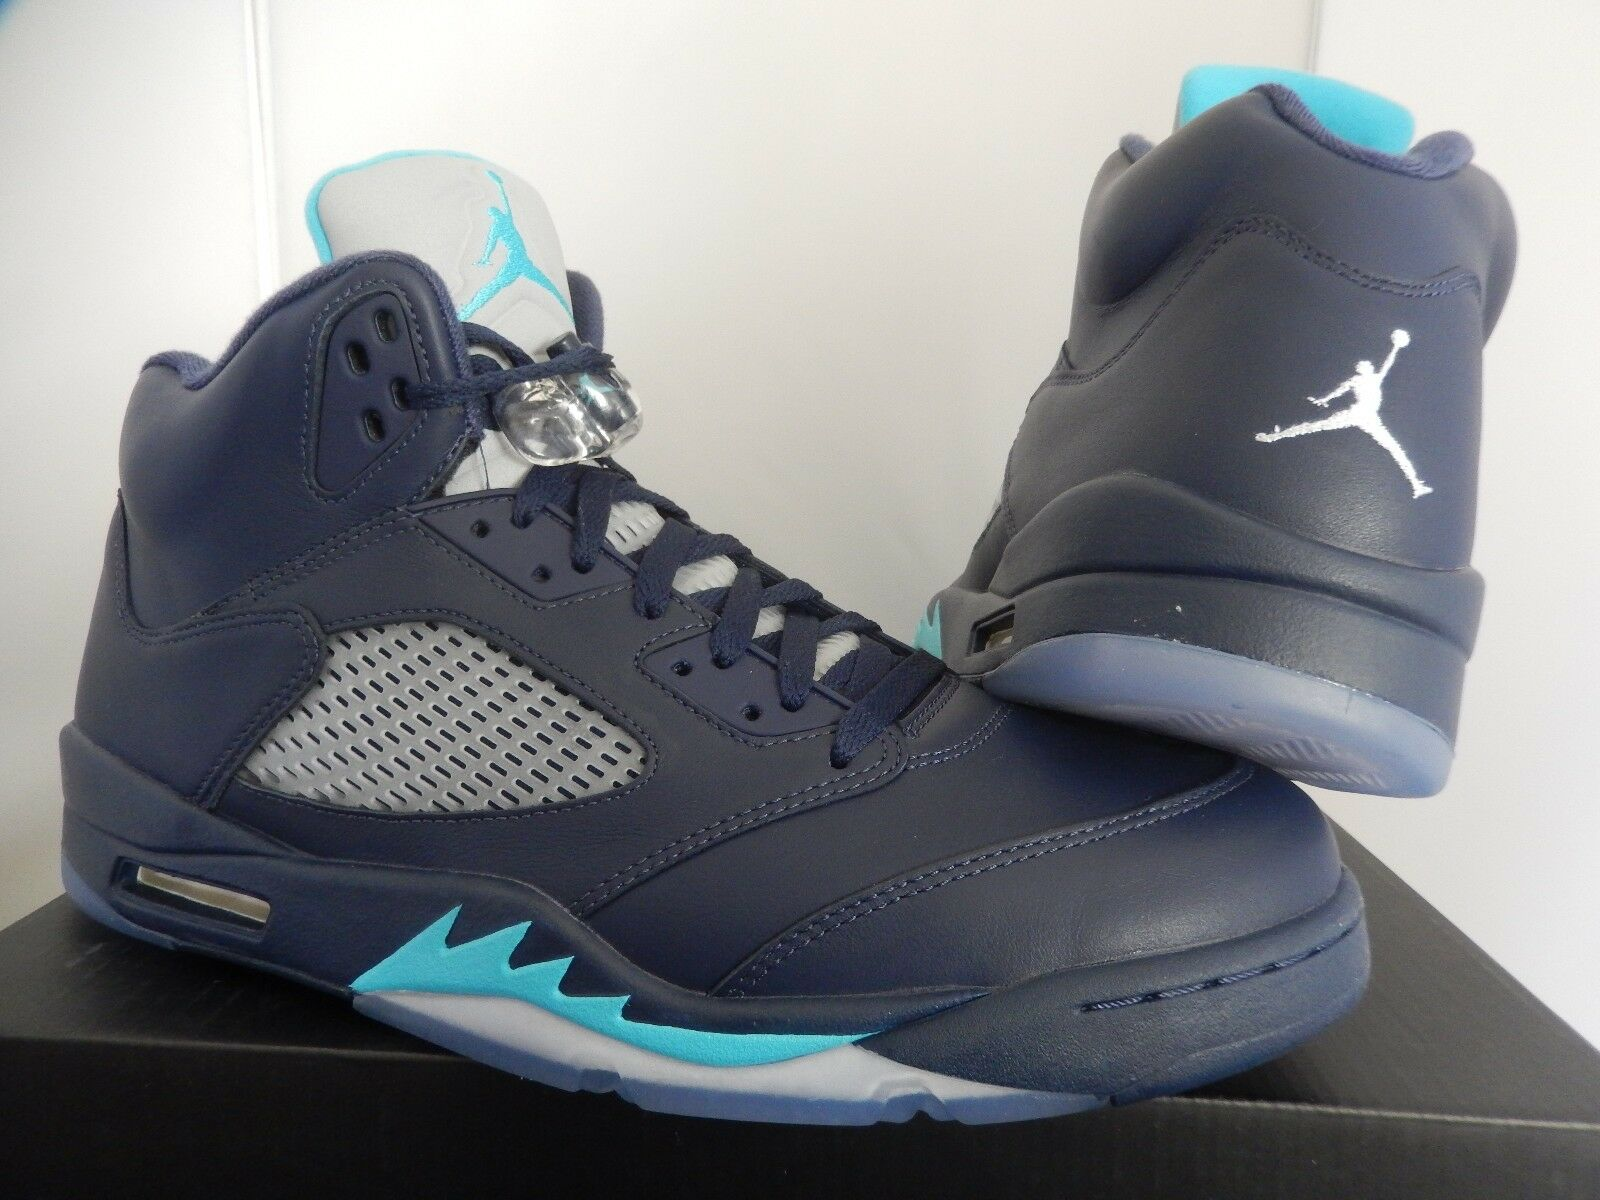 finest selection 0f259 2800b ... NIKE NIKE NIKE AIR JORDAN 5 RETRO MIDNIGHT NAVY blueE-WHITE SZ 14   136027 ...